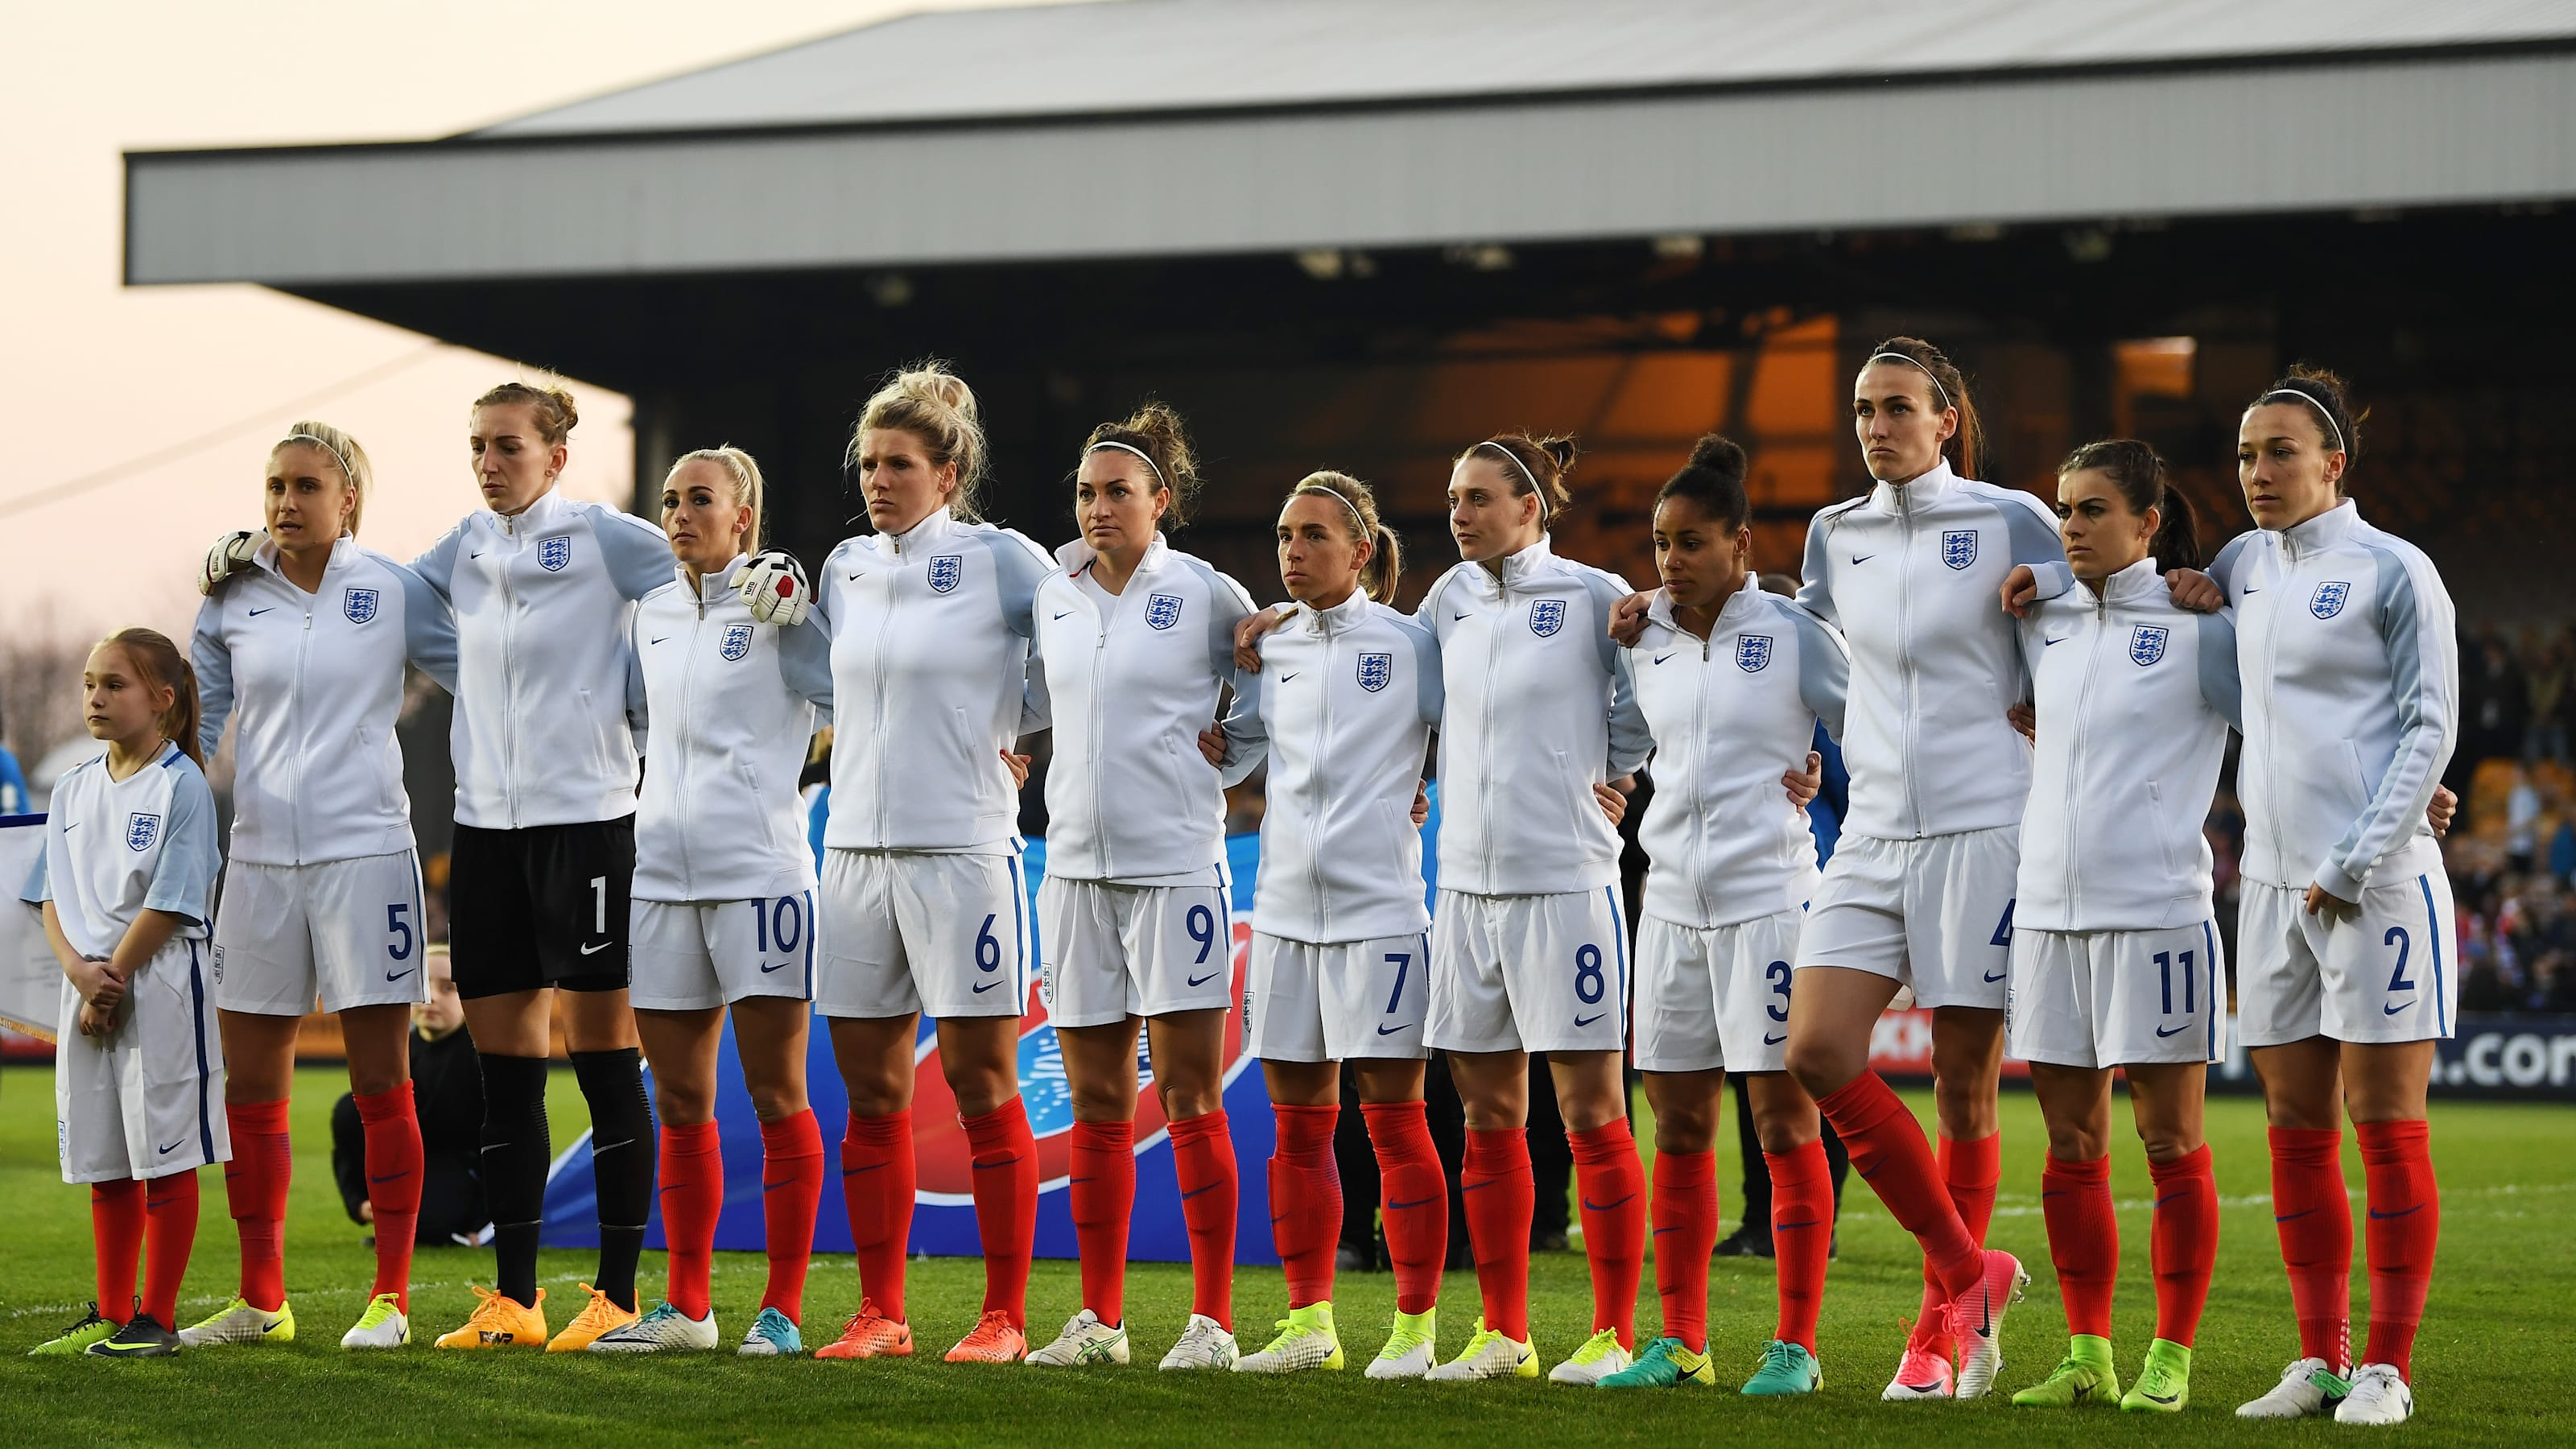 2018/19, 2019/20 · 2020/21, 2021/22. Hege Riise Adds To England Women S Squad For Games Against France And Canada